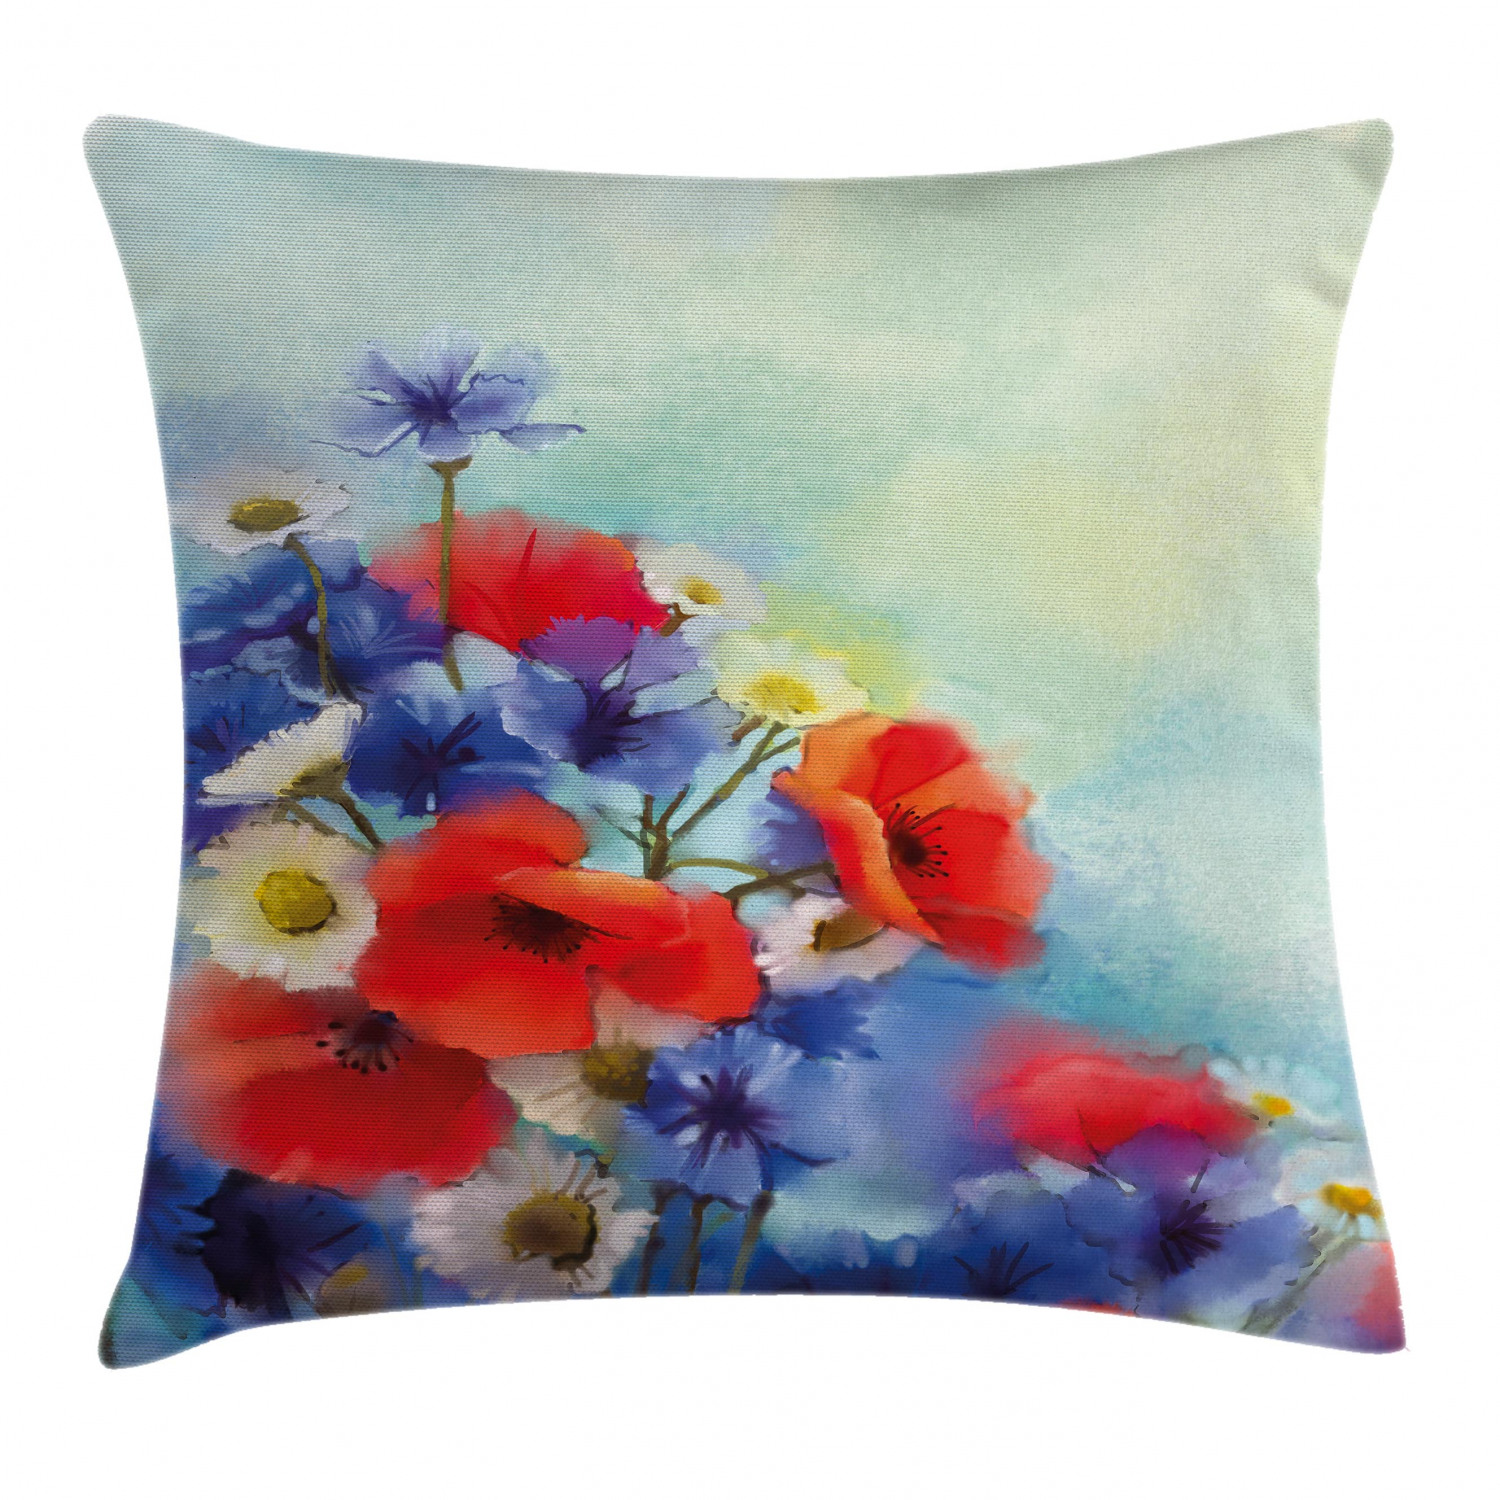 Pillows Spring Floral Throw Pillow Cases Cushion Covers Ambesonne Home Decor 8 Sizes Home Garden Mbln Org